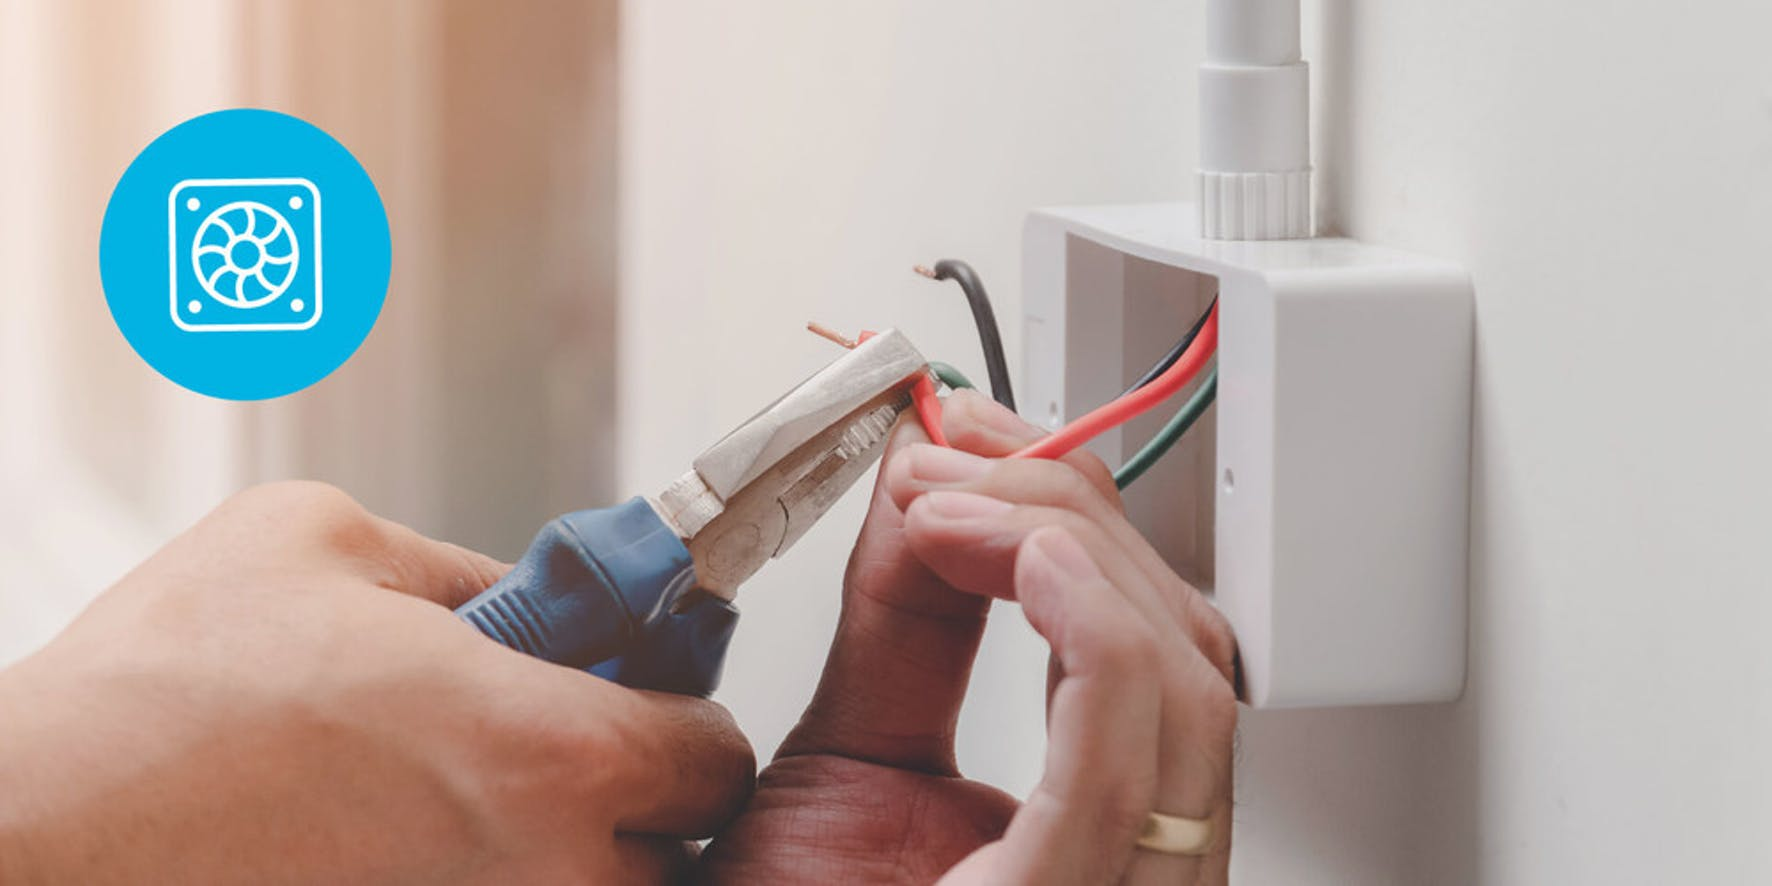 Electrician cutting a red wire inside of a wire box